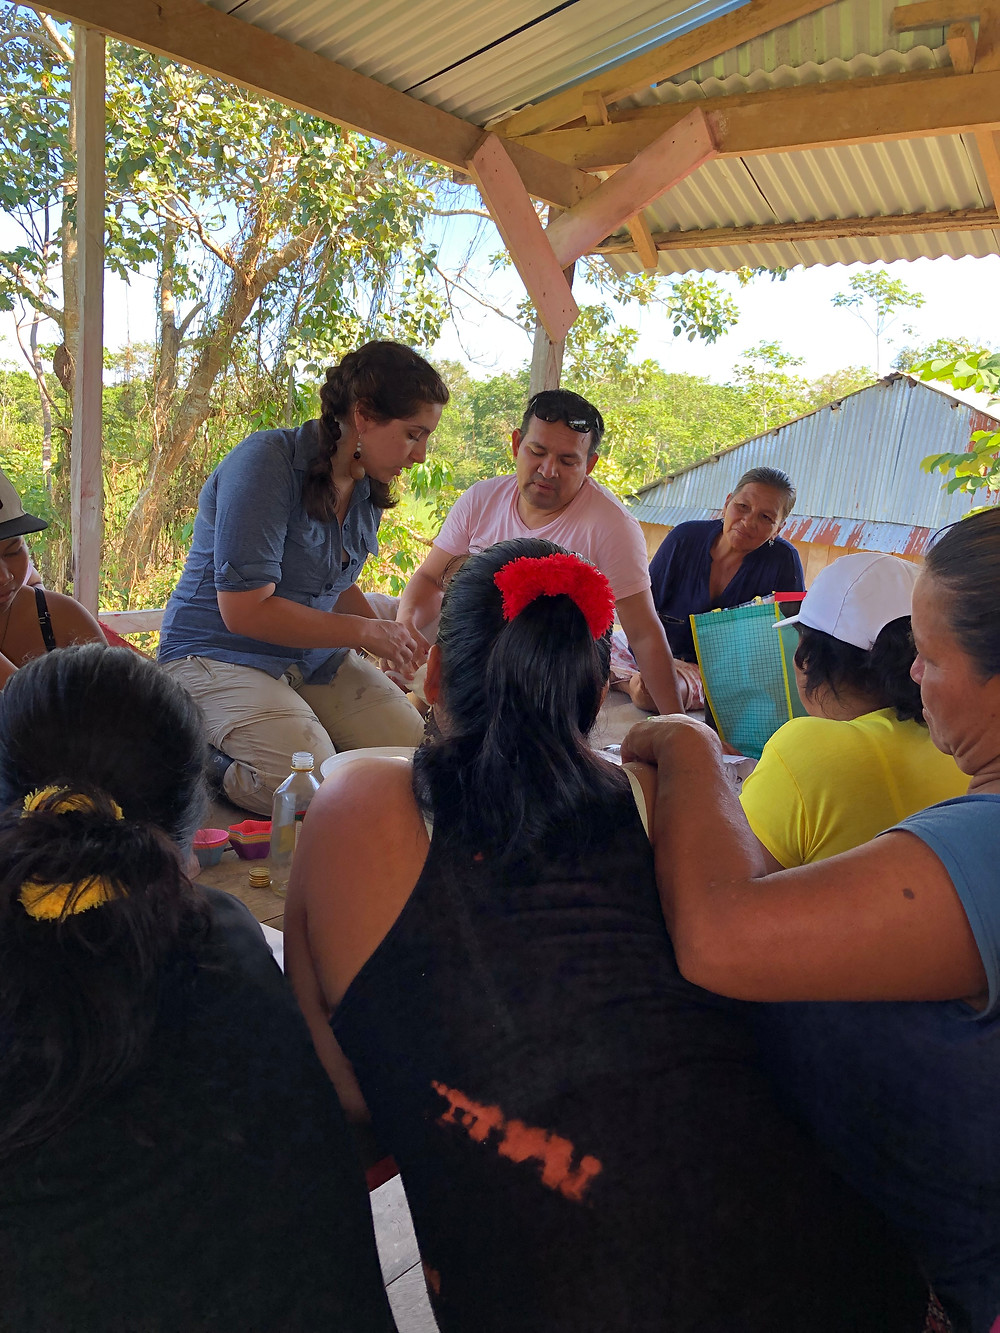 Julia Ausmus teaching first aid in Ayacucho Village